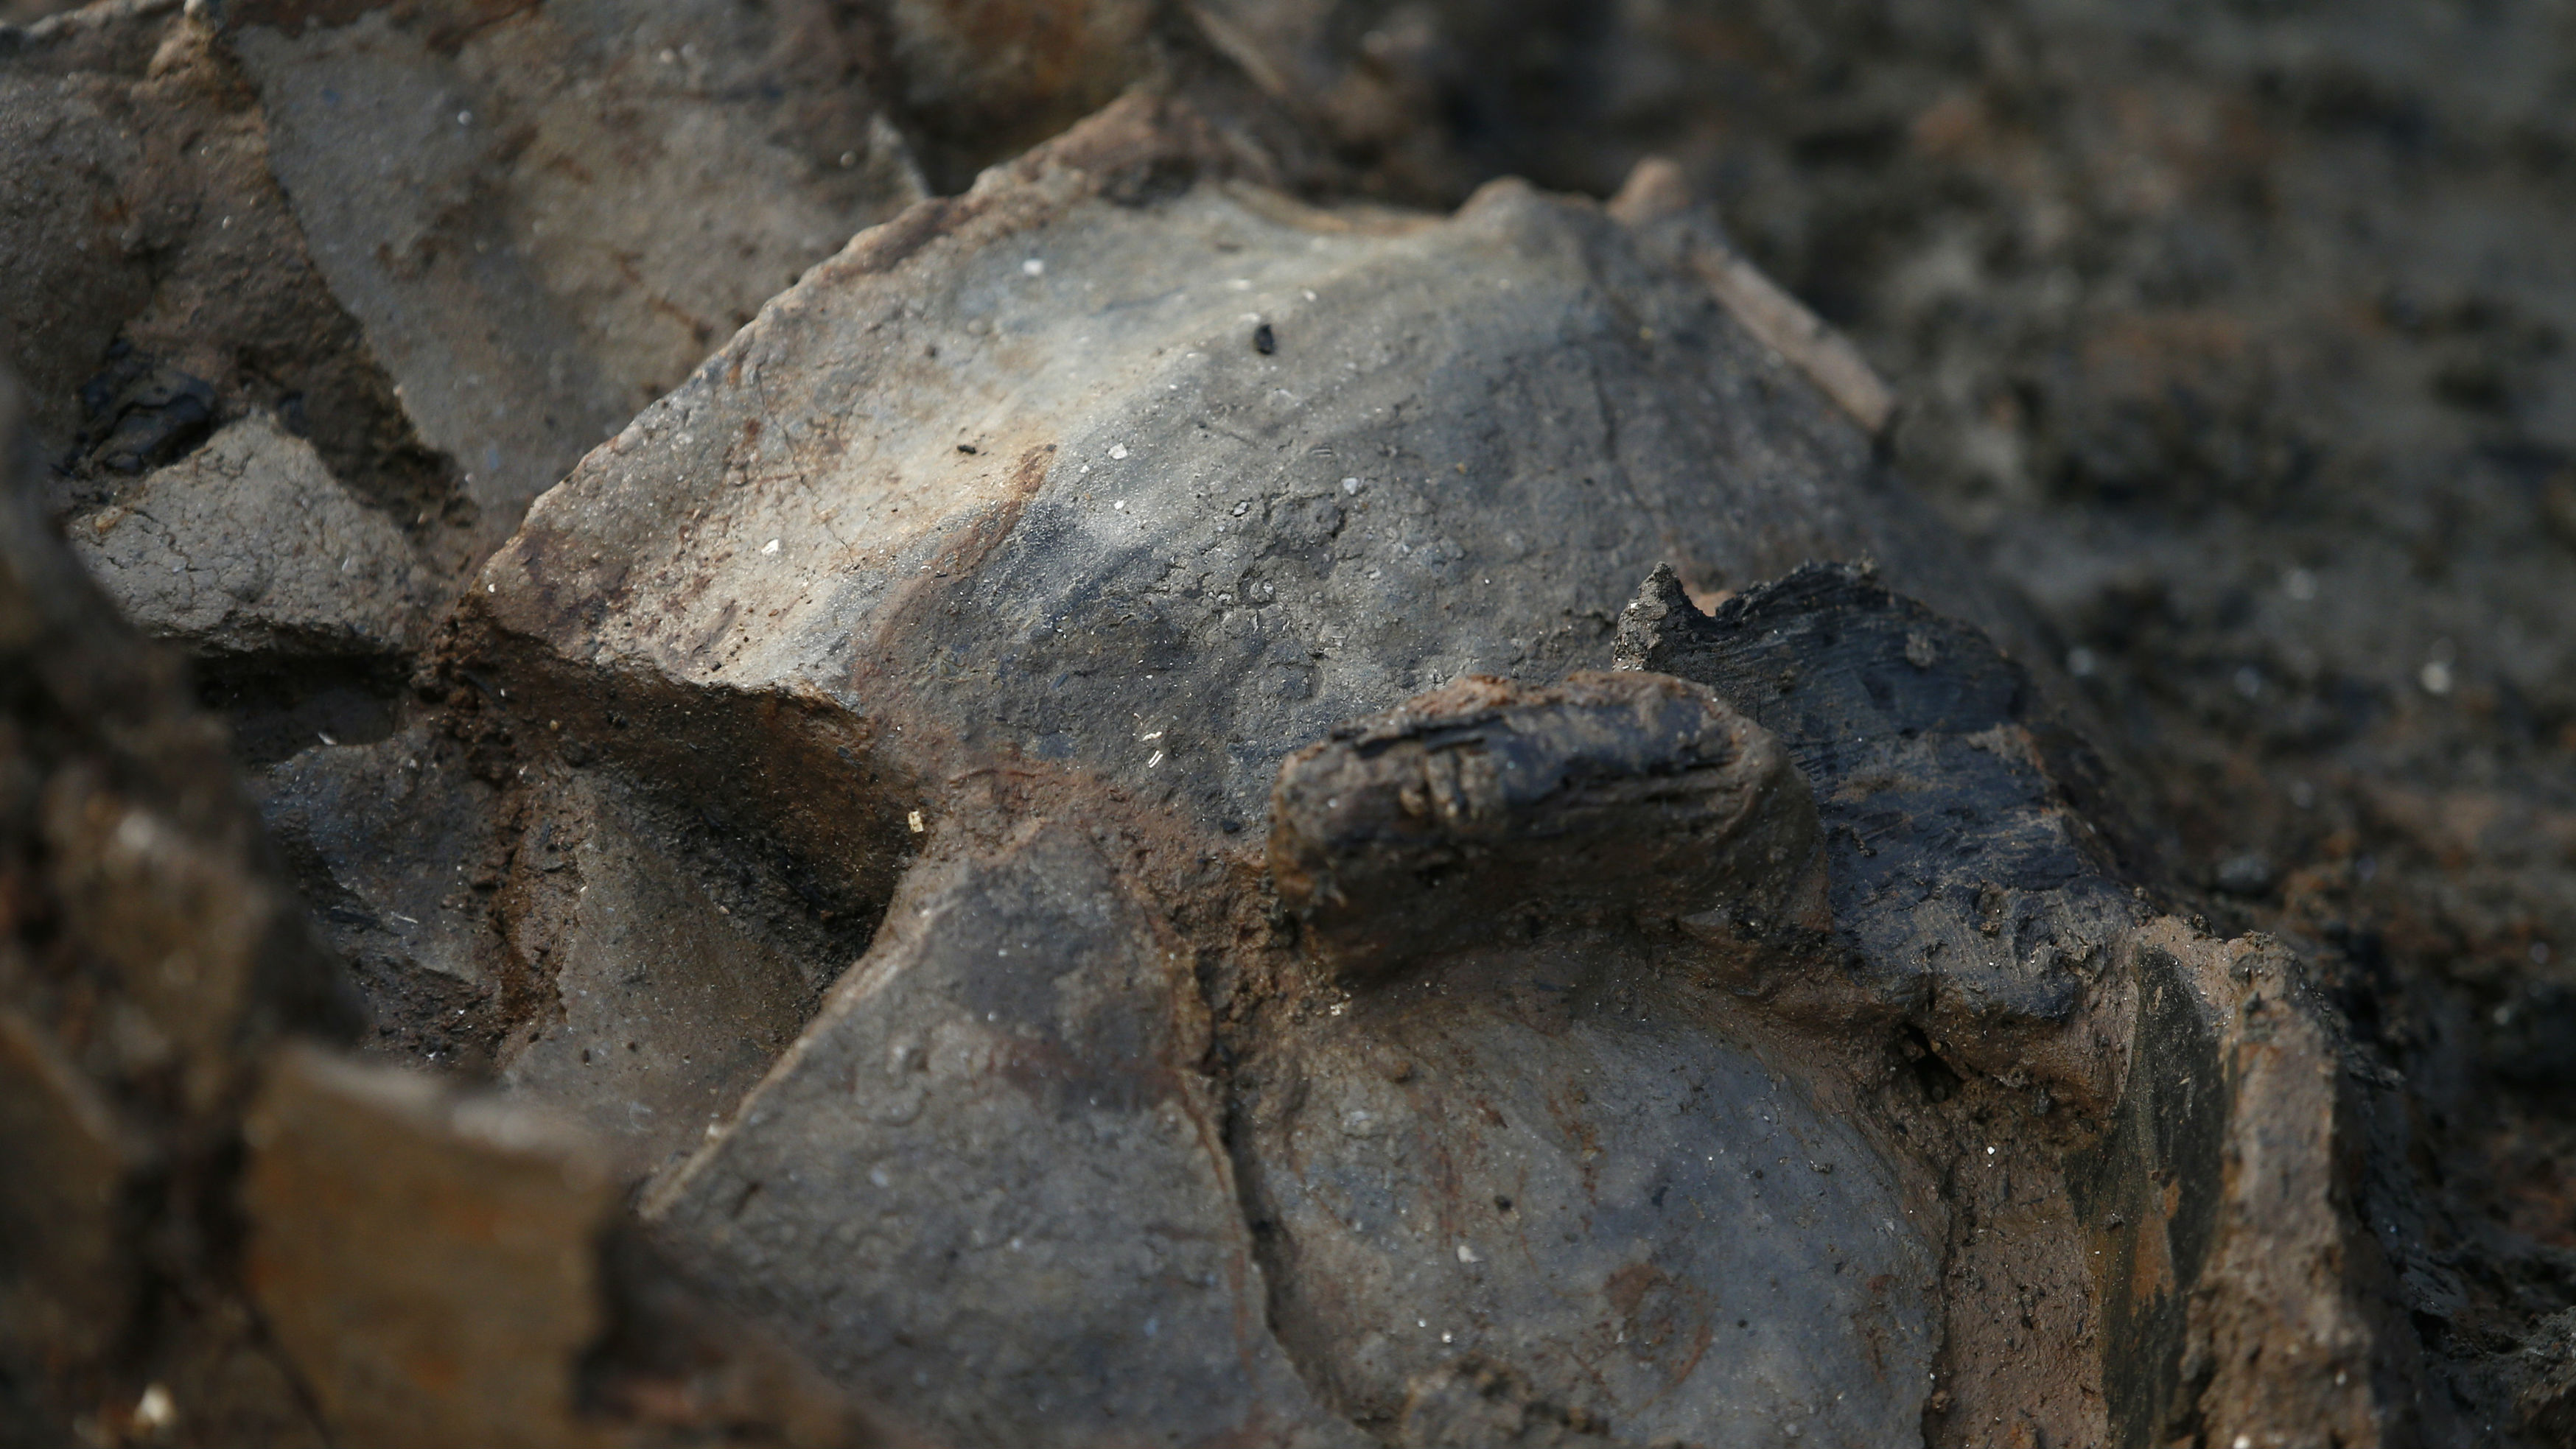 A clay pot is unearthed by archaeologists from the University of Cambridge Archaeological Unit, who are currently uncovering Bronze Age wooden houses, preserved in silt, from a quarry near Peterborough, Britain, January 12, 2016. Archaeologists said on Tuesday they had discovered what were believed to be the best-preserved Bronze Age dwellings ever found in Britain, providing an extraordinary insight into prehistoric life from 3,000 years ago. The settlement of large circular wooden houses, built on stilts, collapsed in a fire and plunged into a river where it was preserved in silts leaving them in pristine condition, Historic England said.